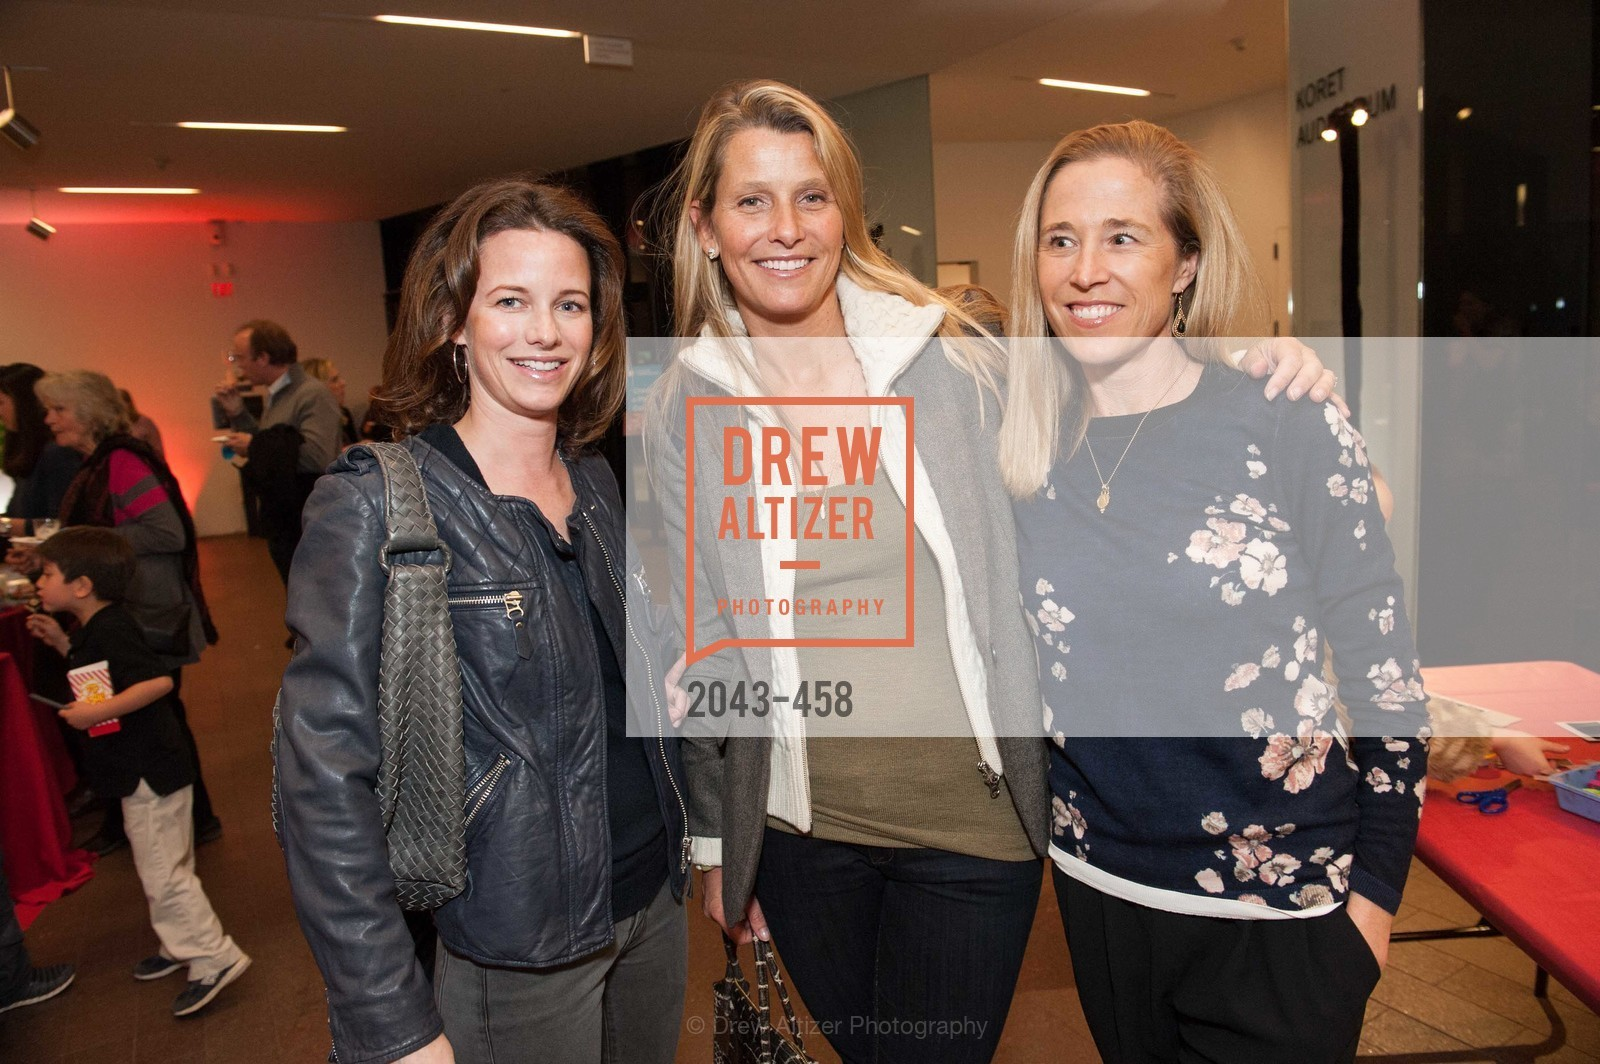 Lindsay Bolton, Jocelyn Sandler, Palmer Weiss, DE YOUNGSTERS A Bigger Family Party, US. US, January 10th, 2014,Drew Altizer, Drew Altizer Photography, full-service agency, private events, San Francisco photographer, photographer california